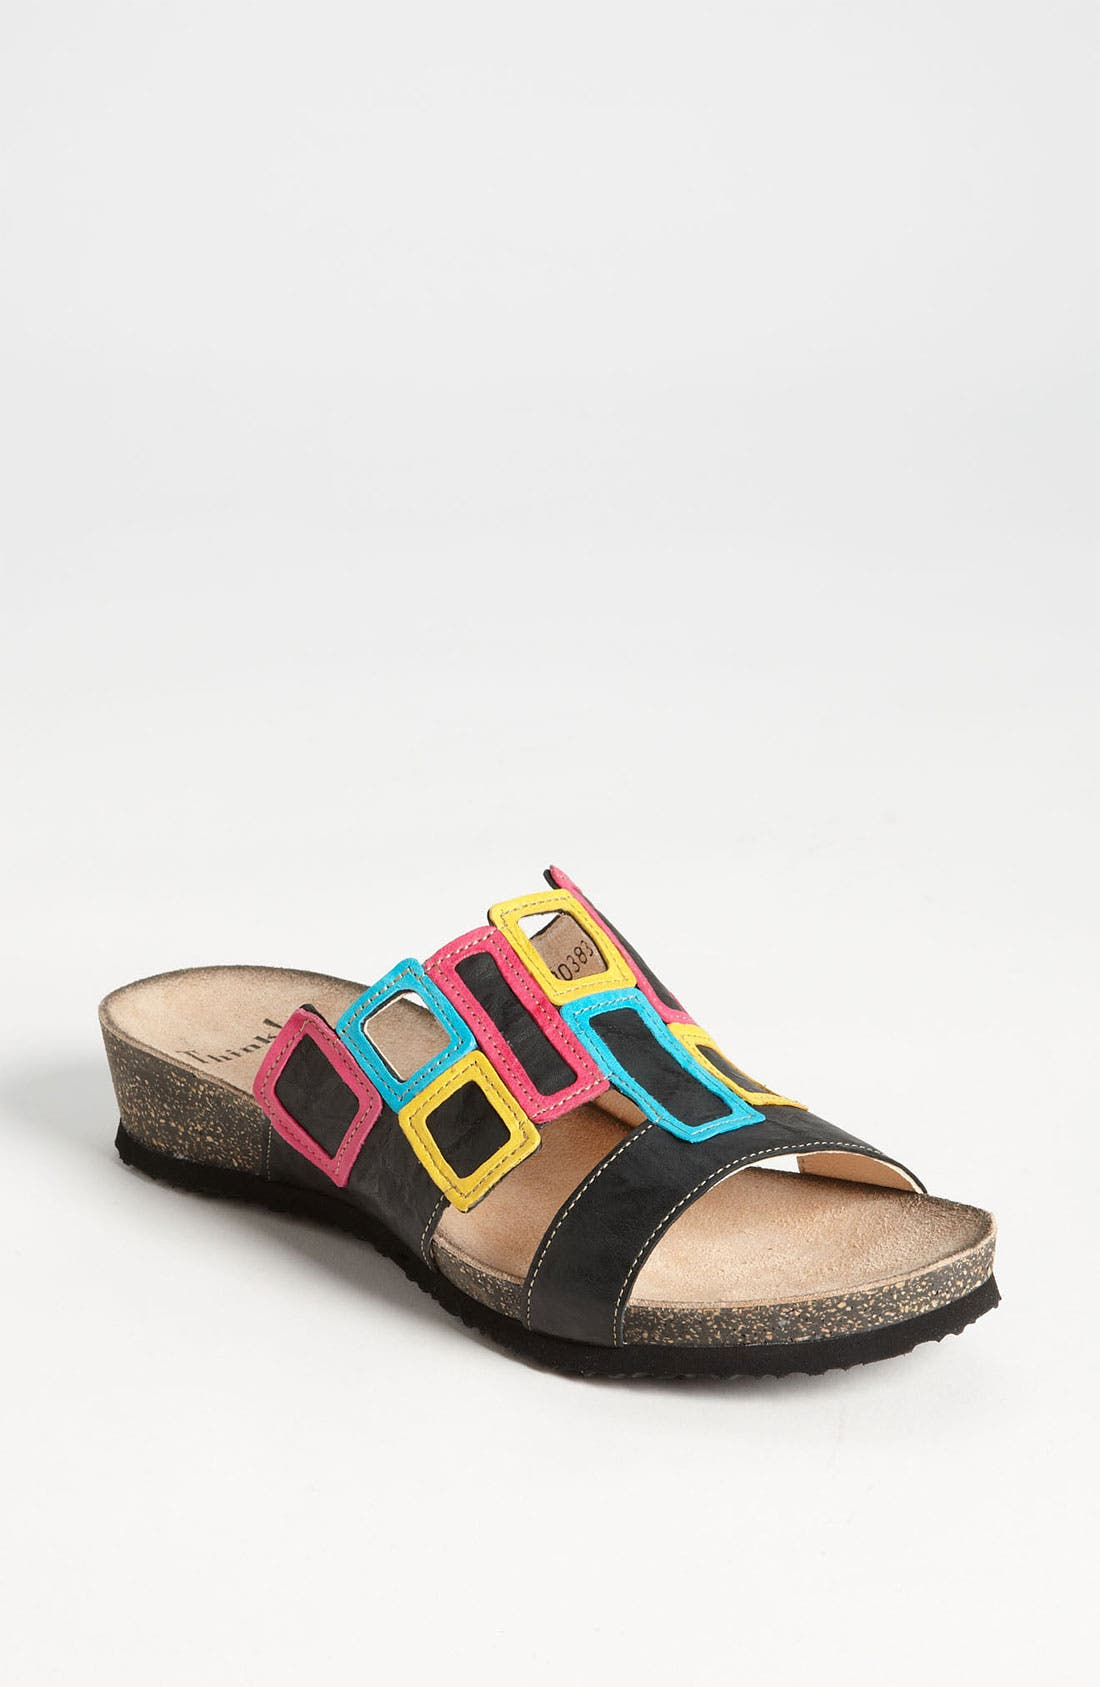 Alternate Image 1 Selected - Think! 'Dumia' Sandal